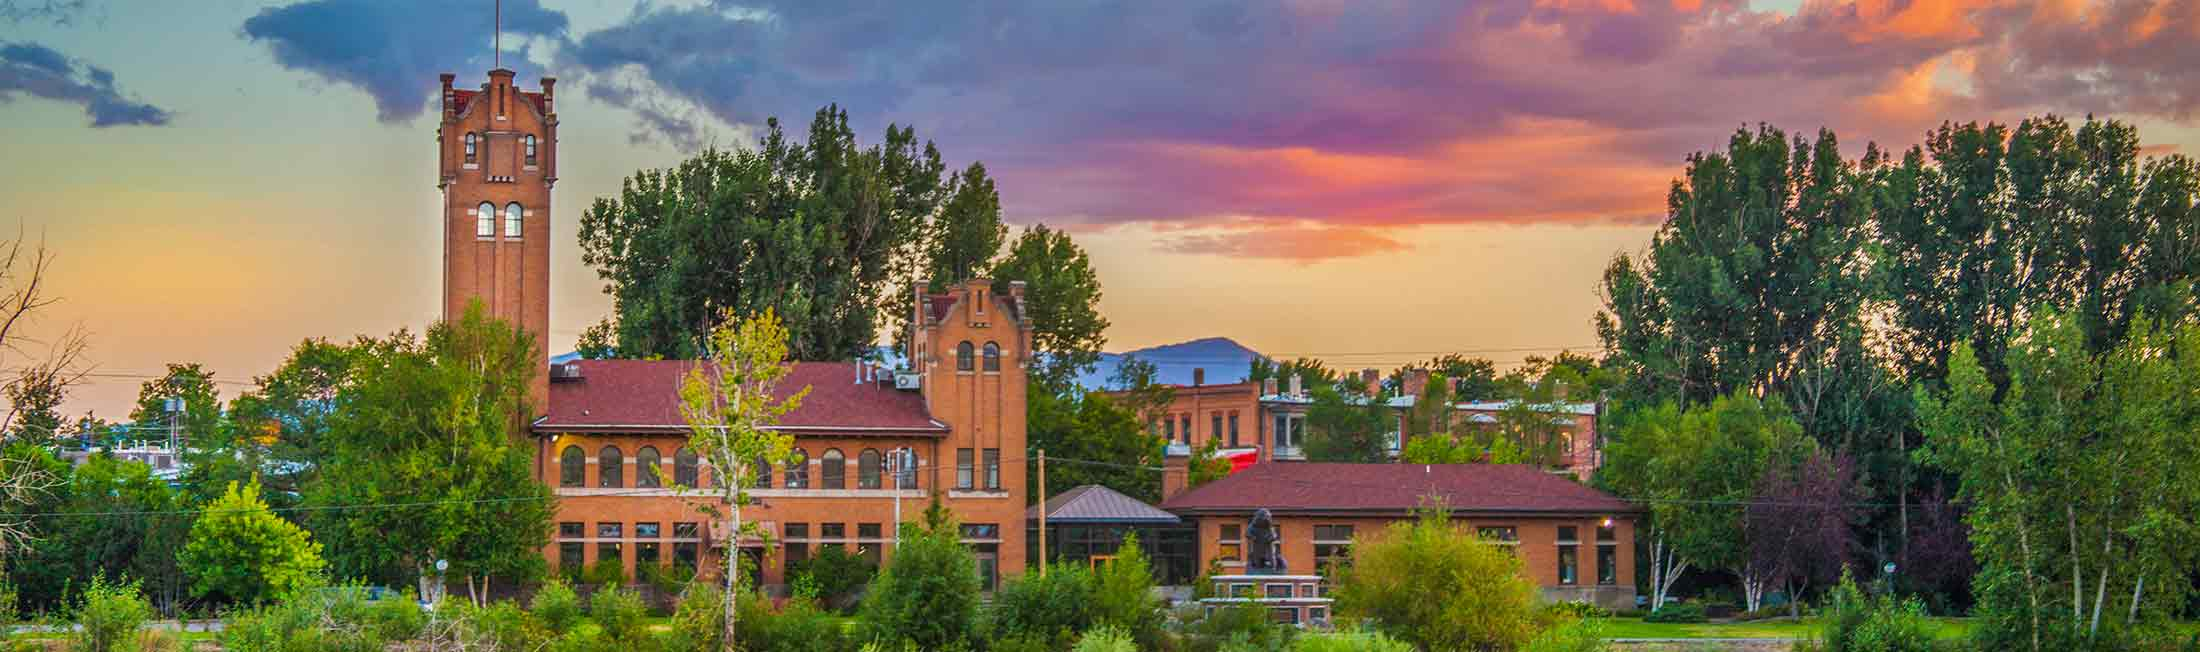 Summer sunset over the Boone and Crocket Building in Downtown Missoula